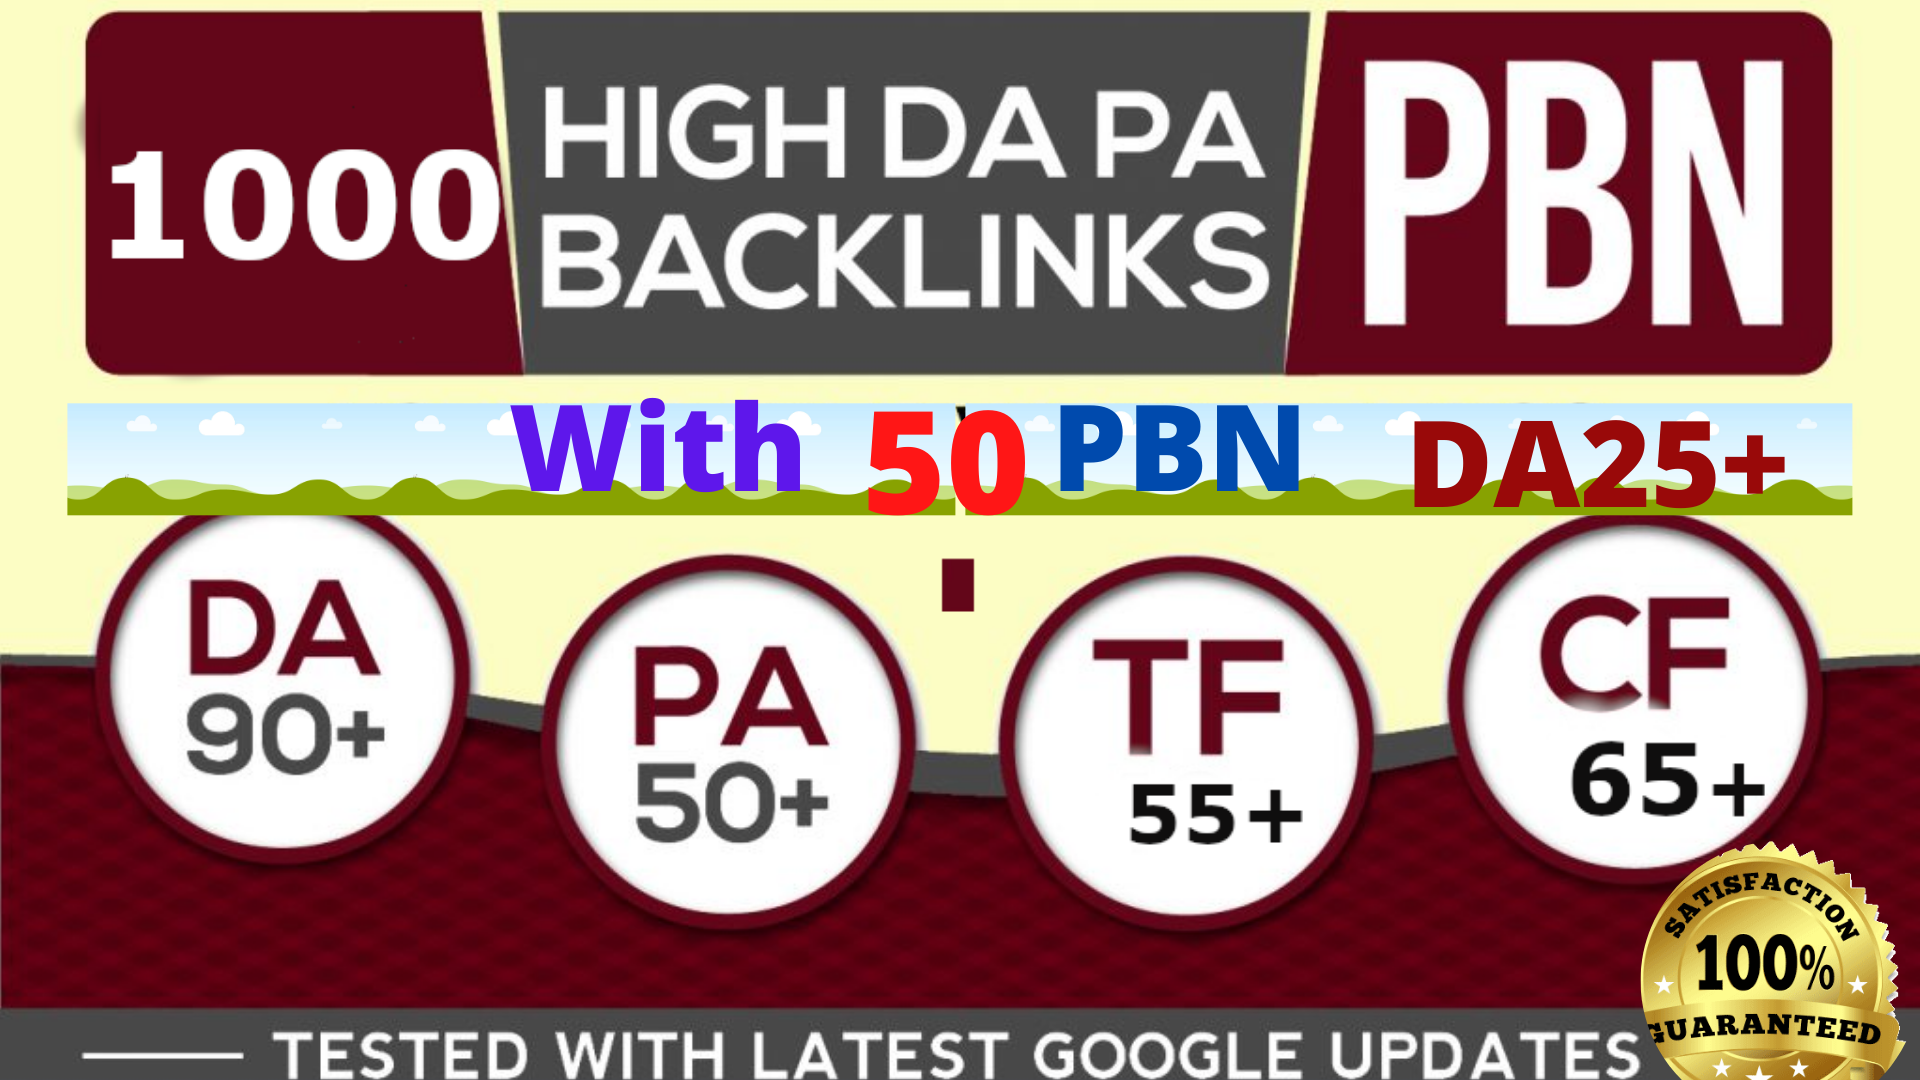 3 Tire 1000+strong mixup links with 50 PBN DA25+ HIGH DA/PA/CF/TF exclusive Back-links